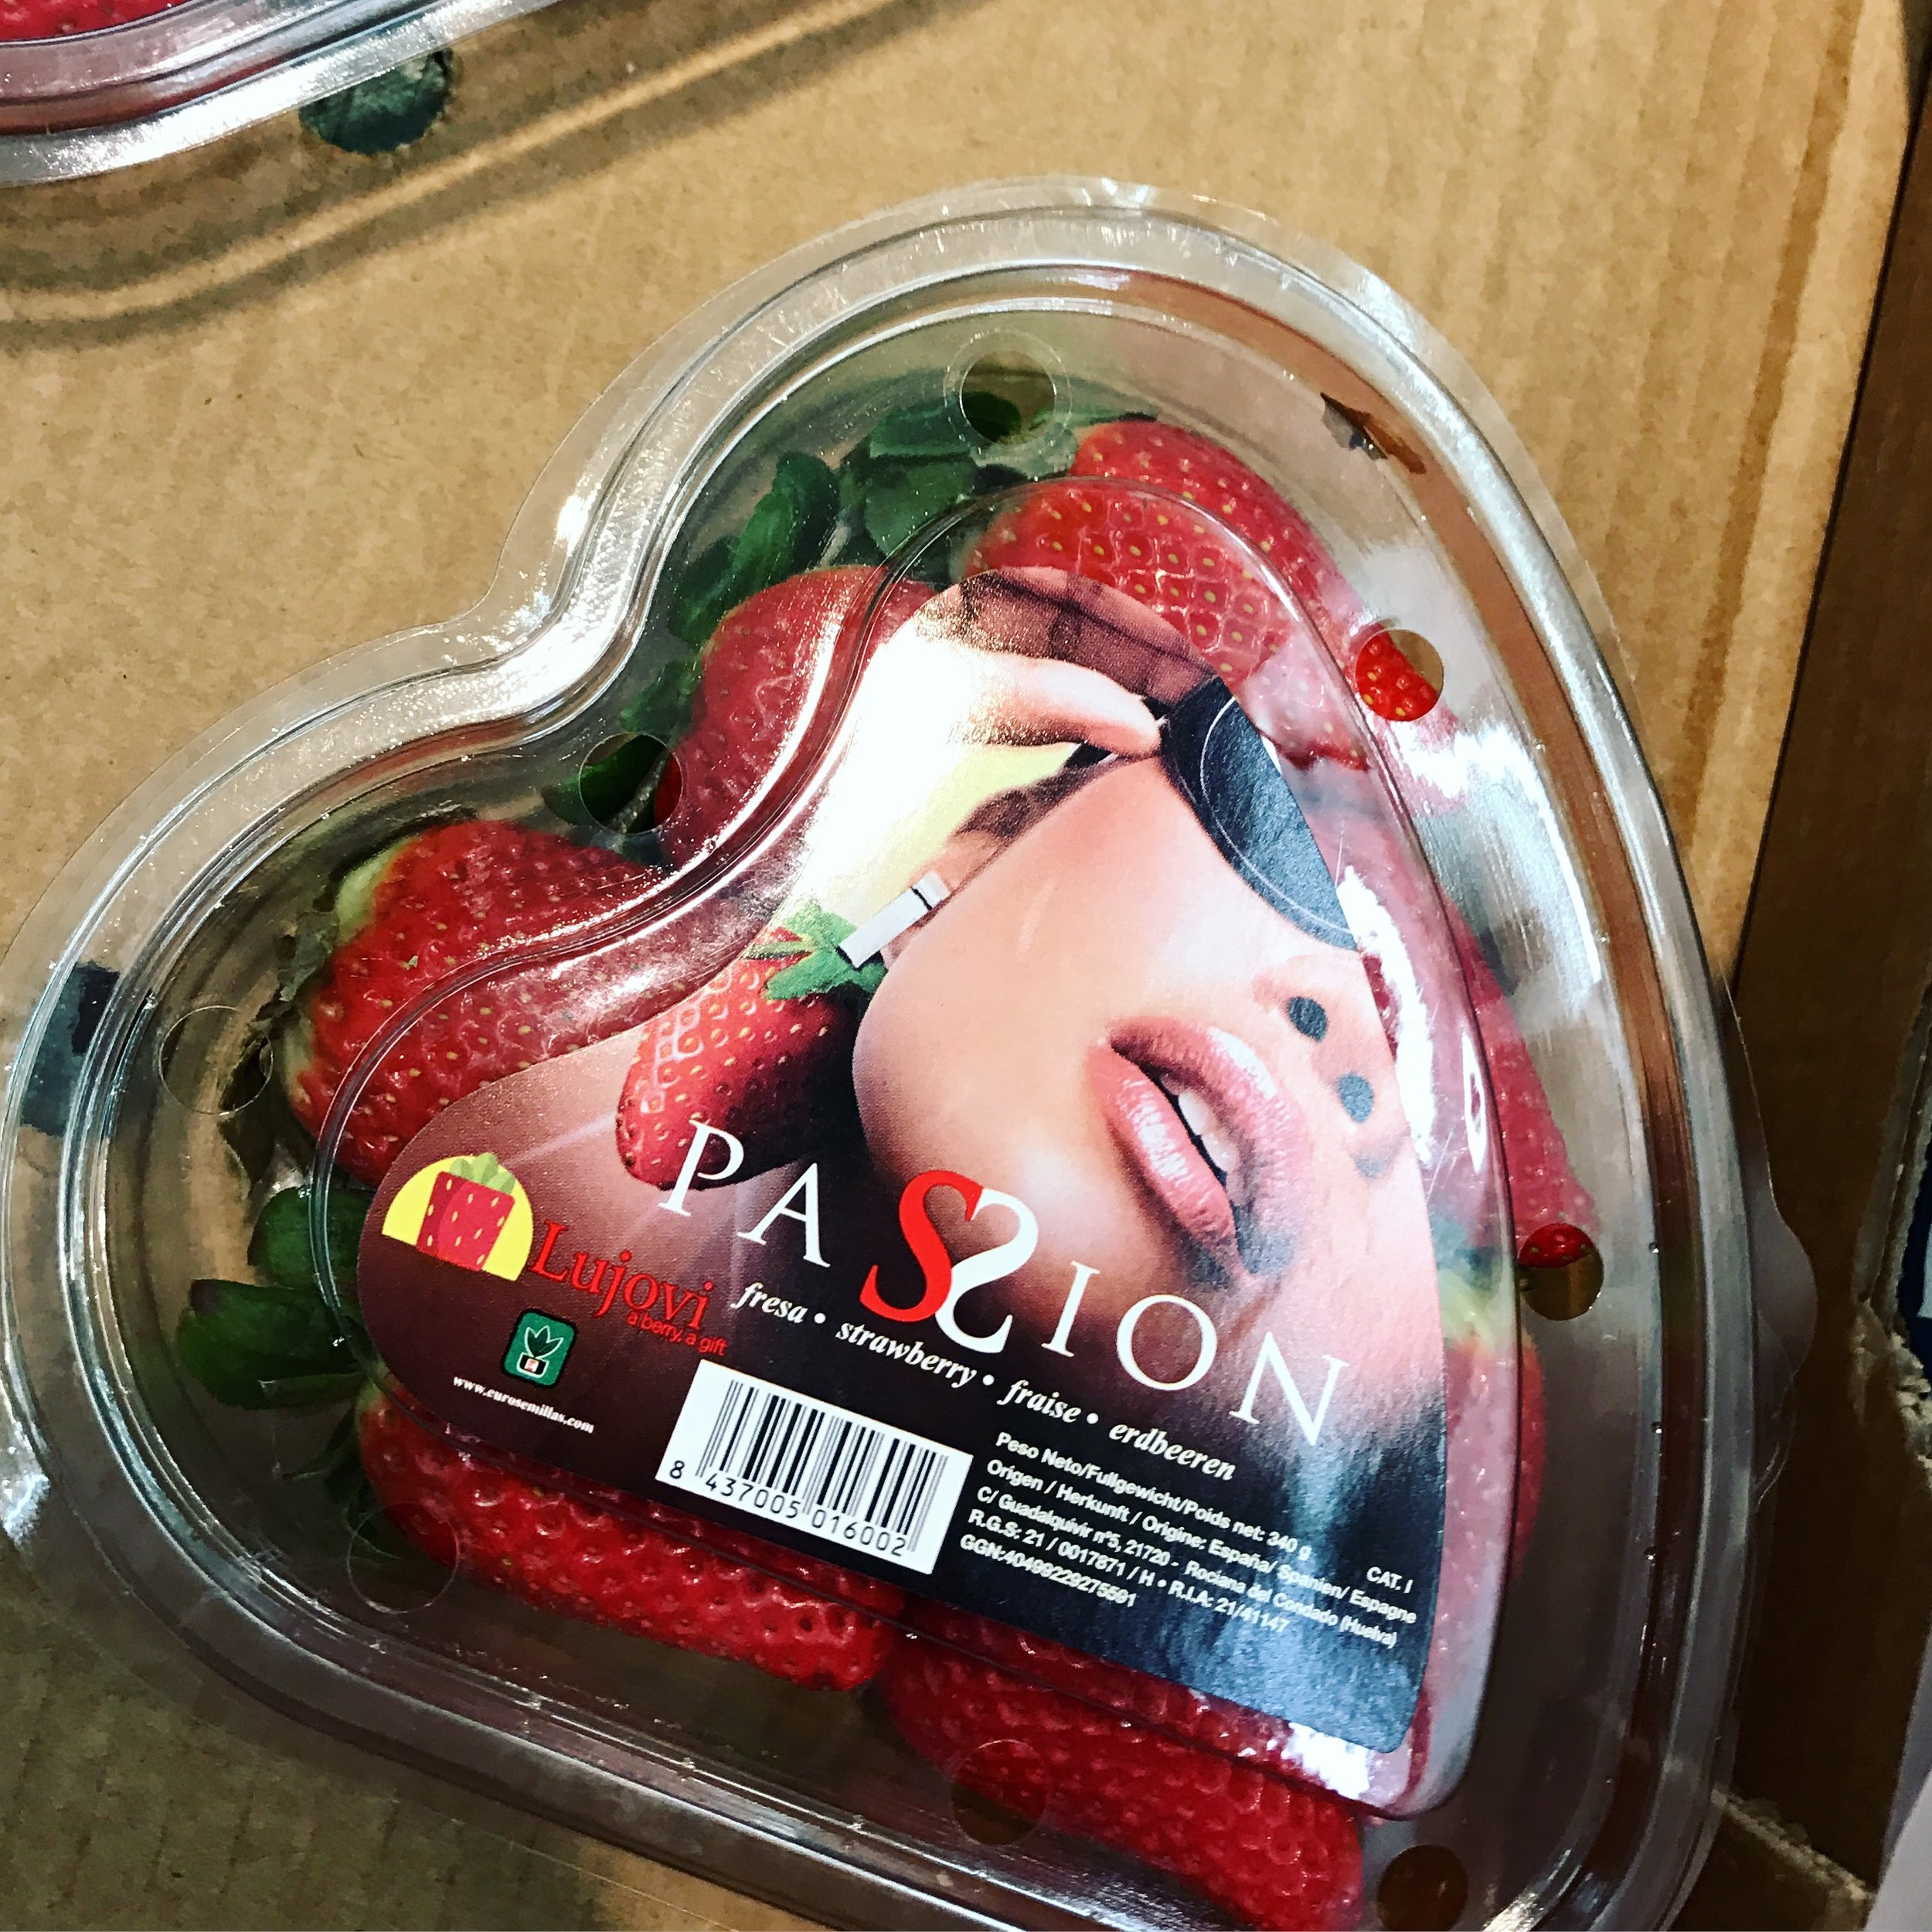 VERY luxurious strawberries at the local grocery store. Very passionate and I wish I had a clip on strawberry earring like her.